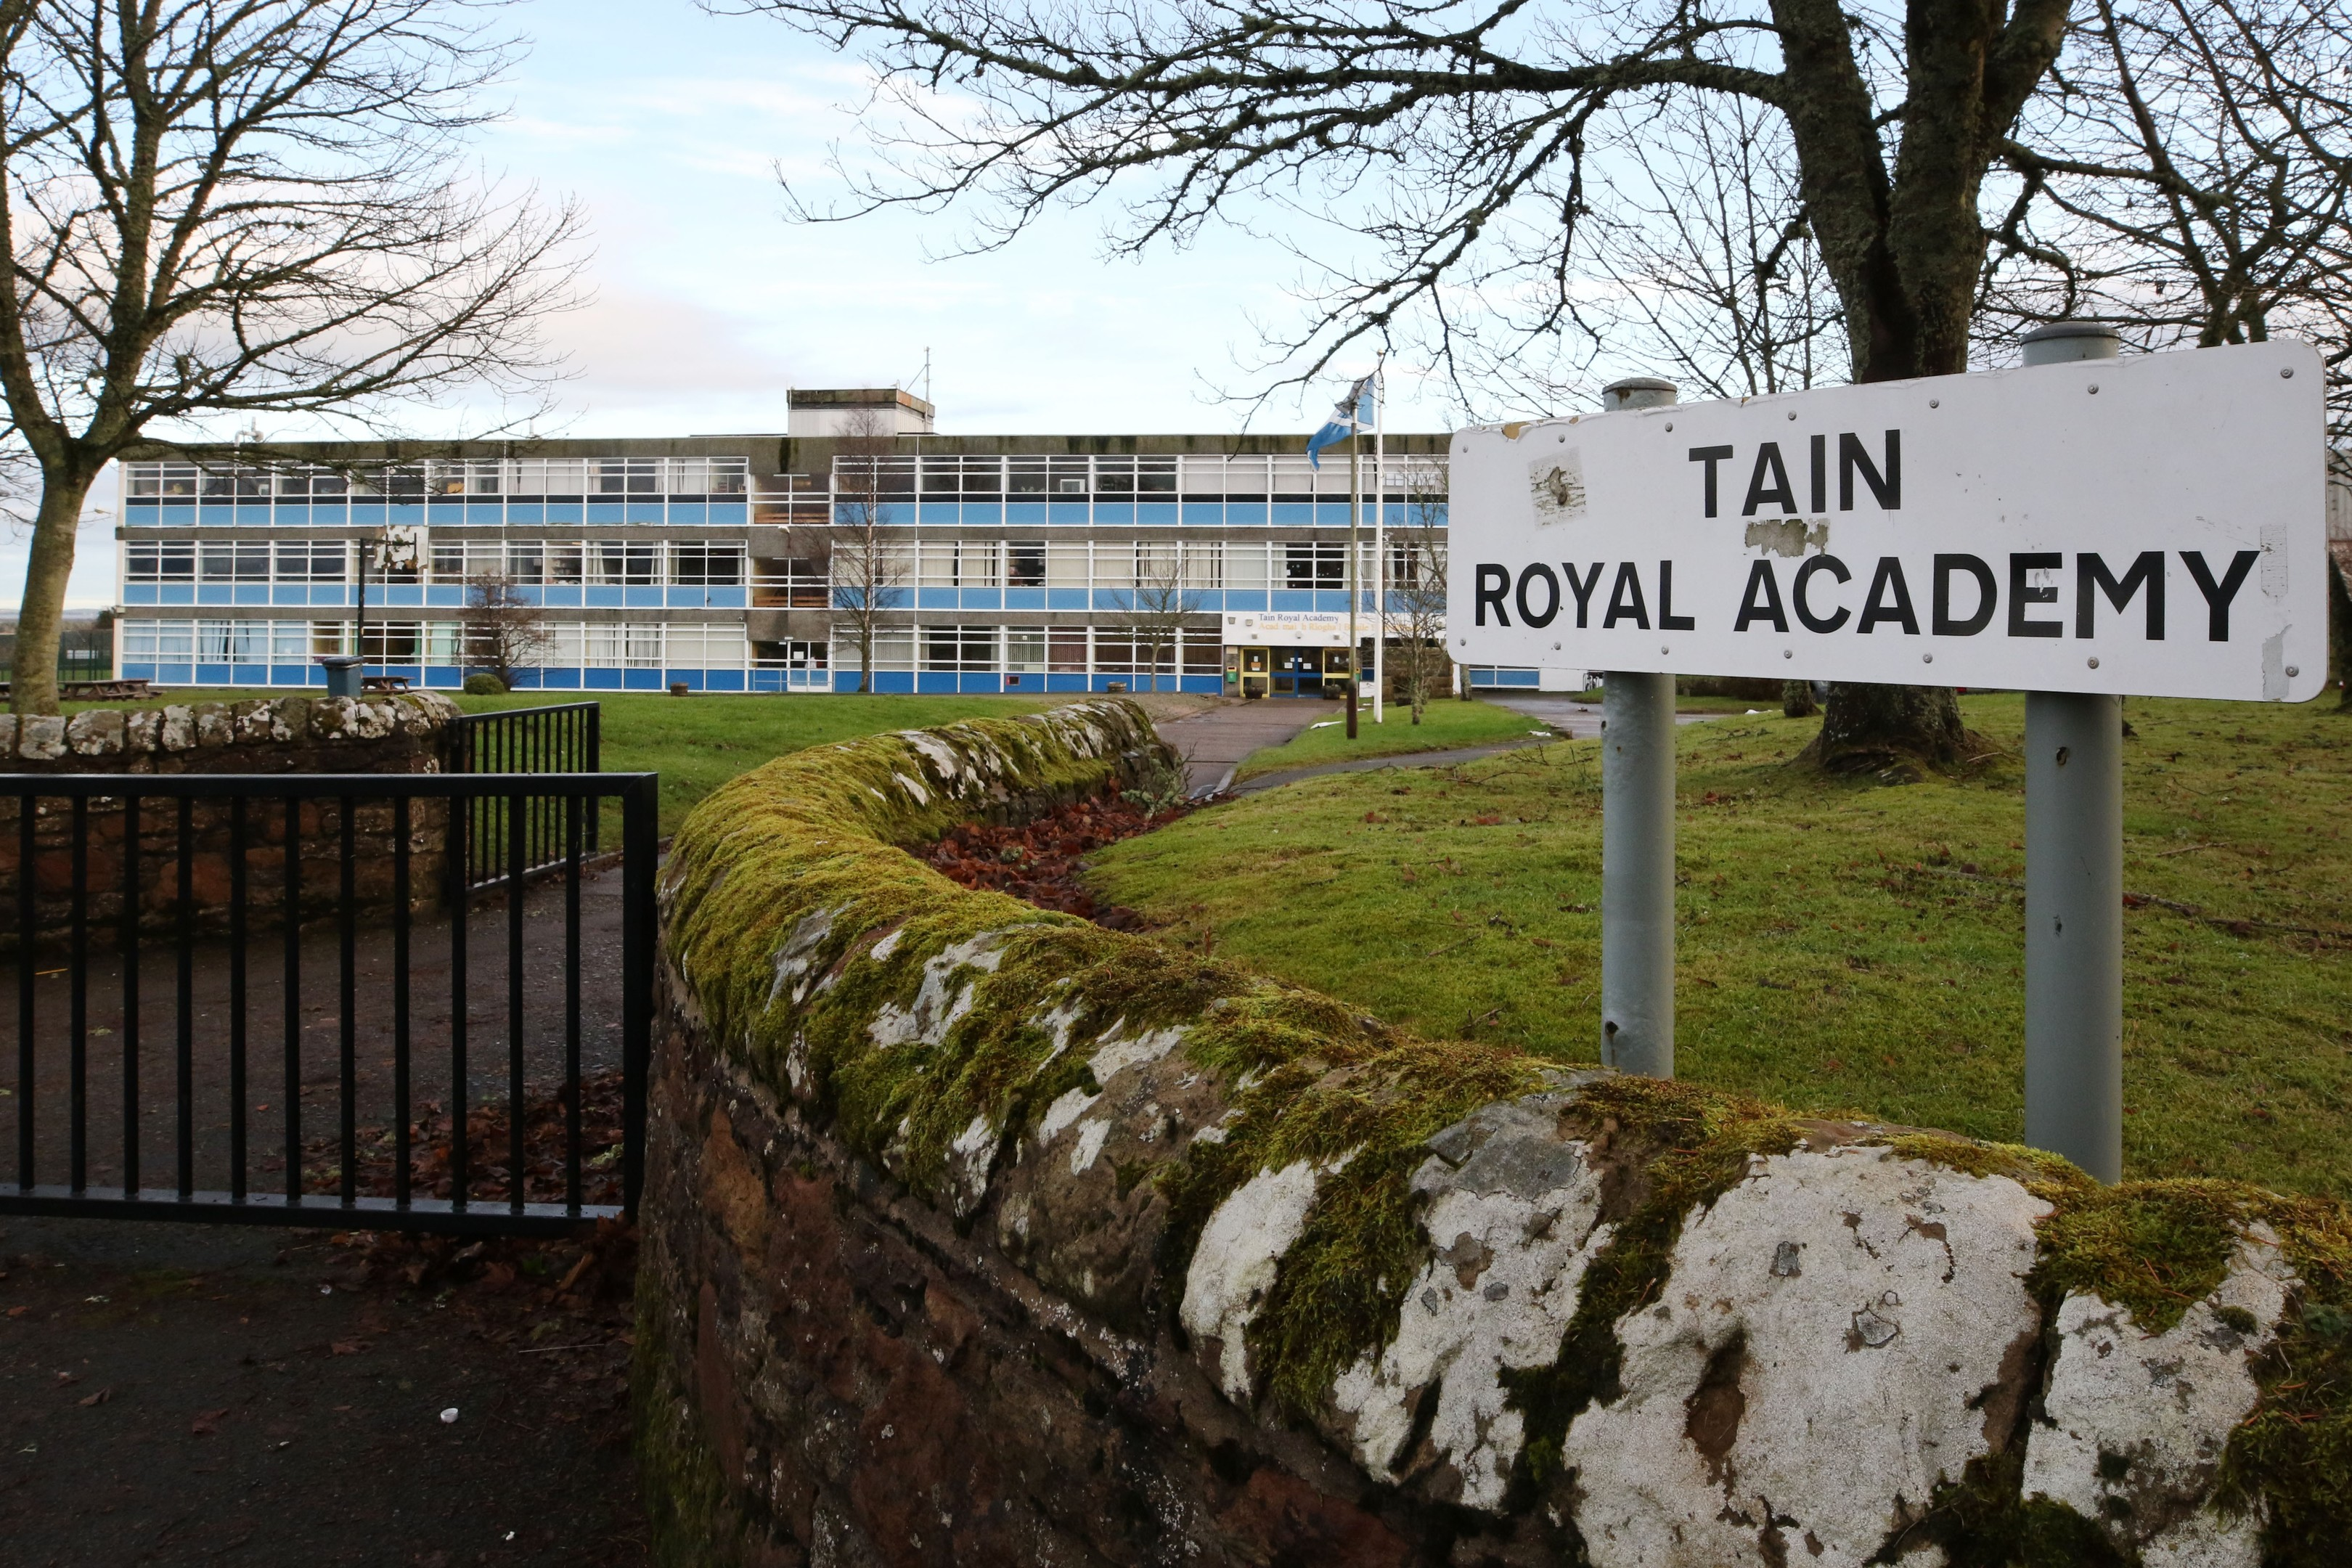 Tain Royal Academy is a proposed site for the new school.